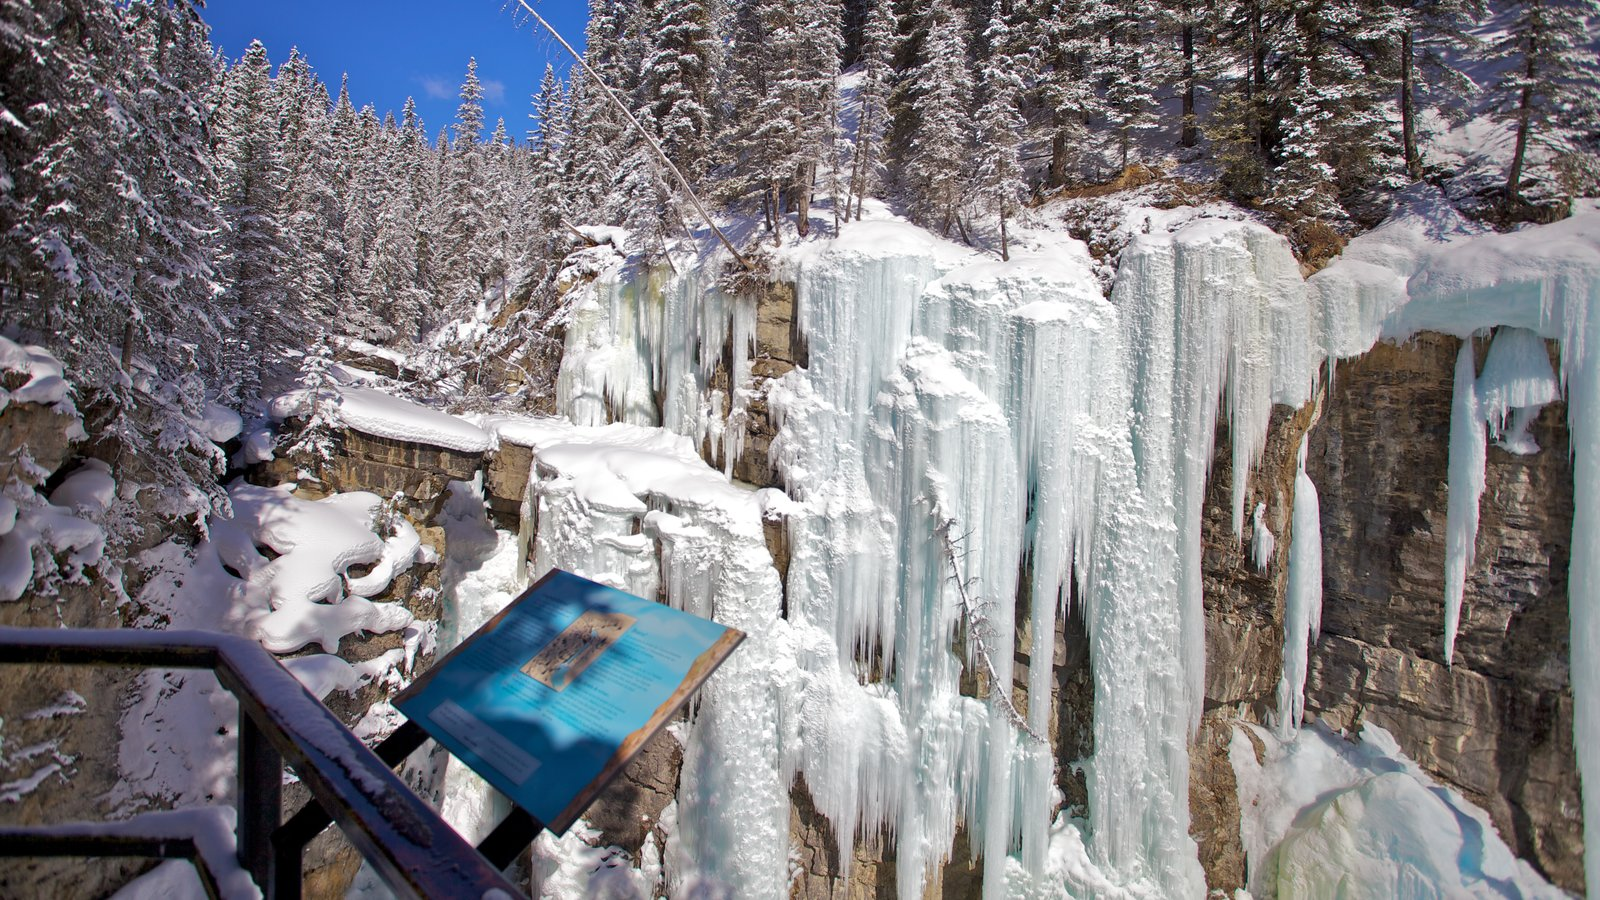 Johnston Canyon featuring landscape views, a gorge or canyon and snow